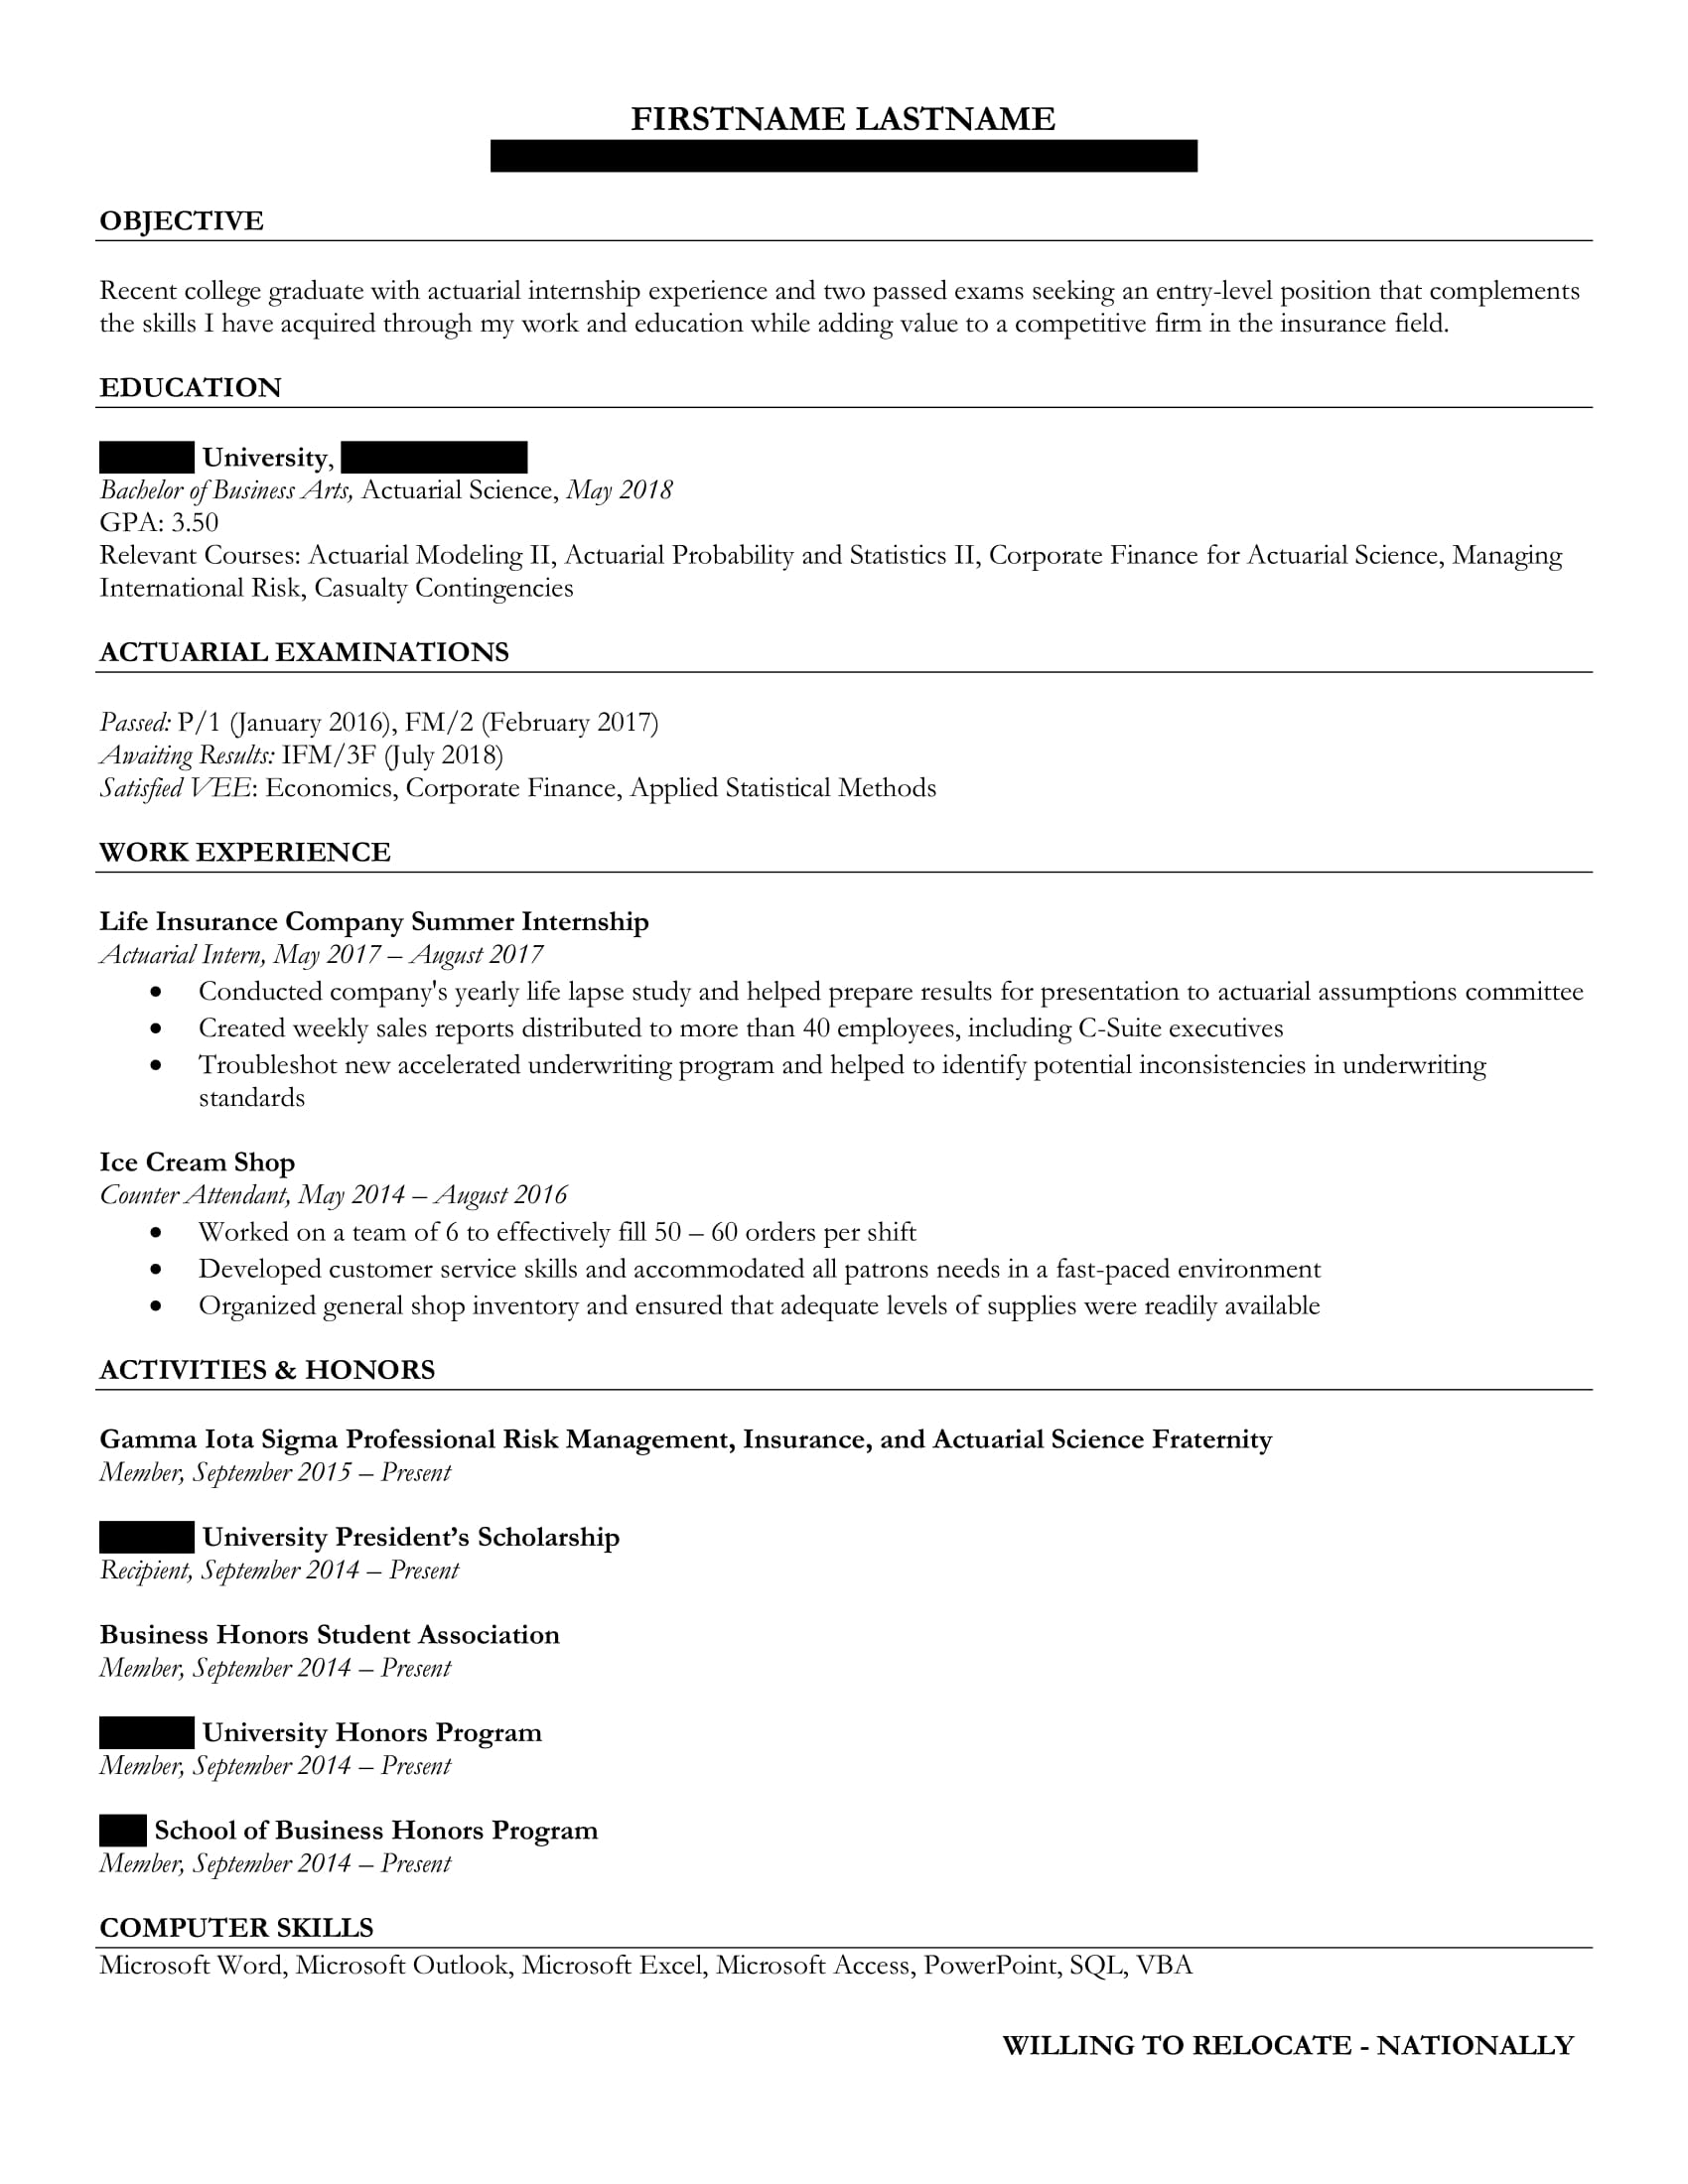 resume advice for college graduate seeking entry level position all criticism welcome Resume Resume For Fresh Graduate Seeking Any Job